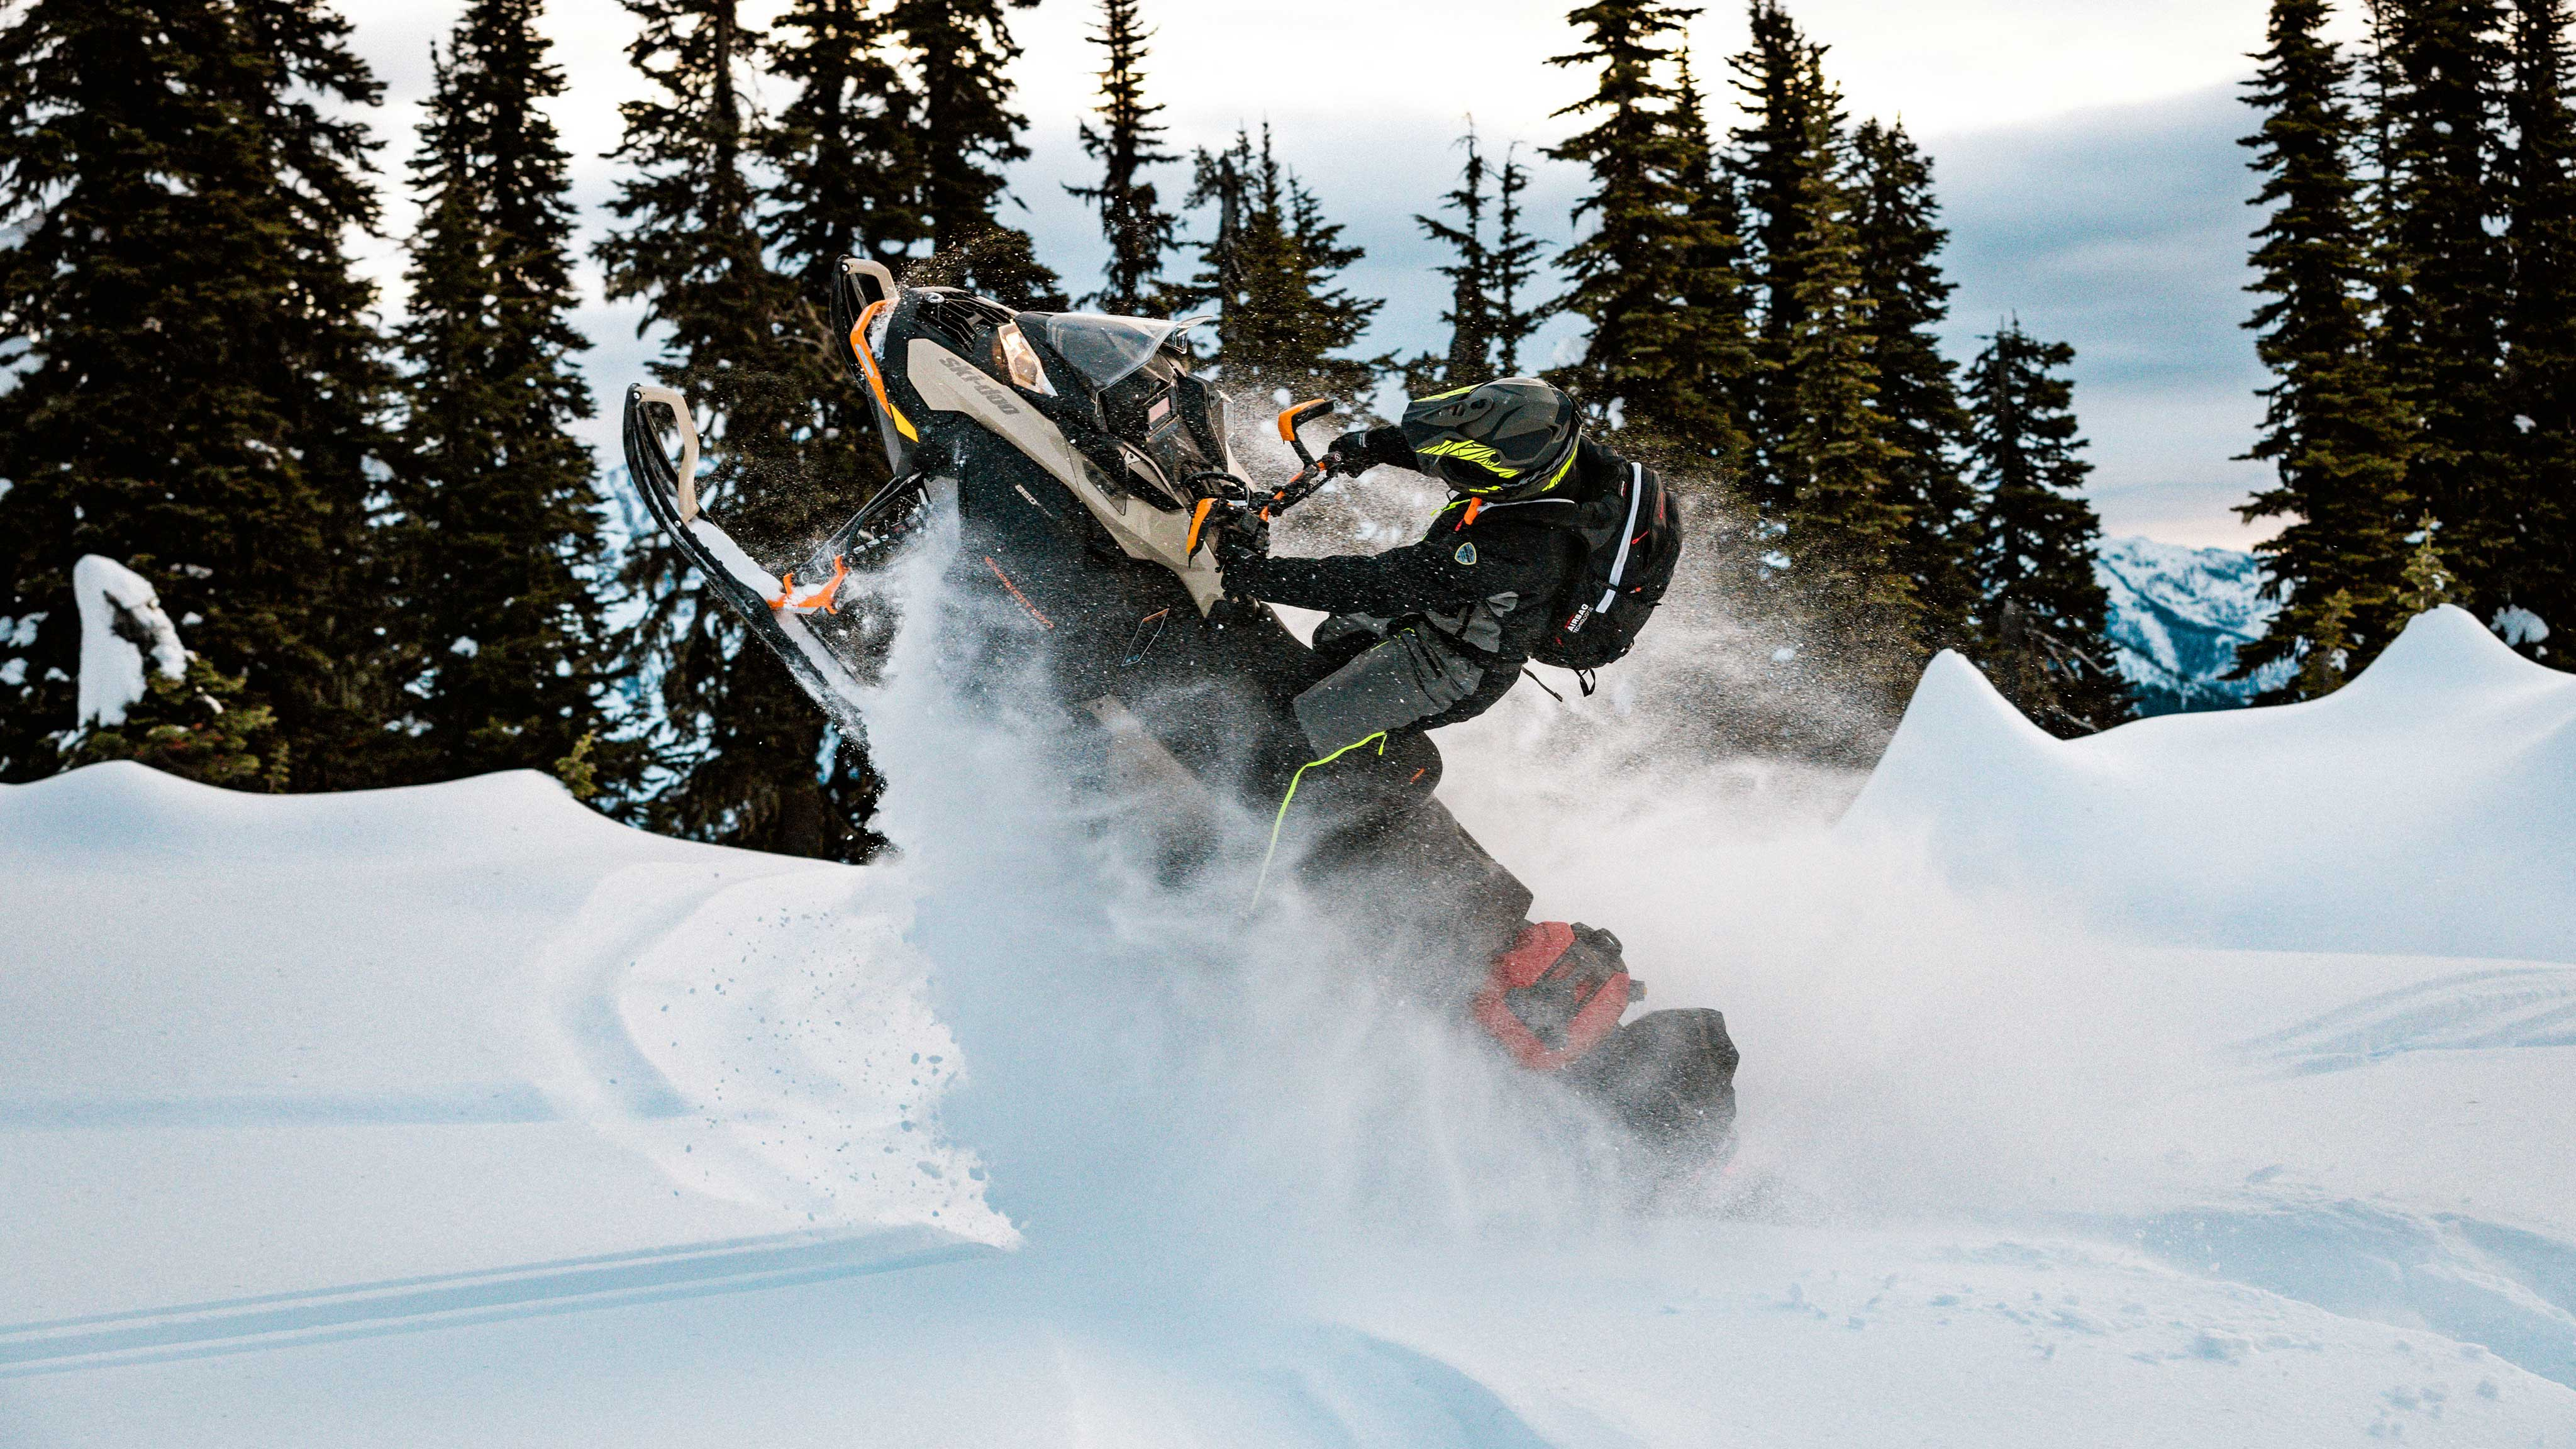 2022 Ski-Doo Expedition: wheelies in Deep-Snow